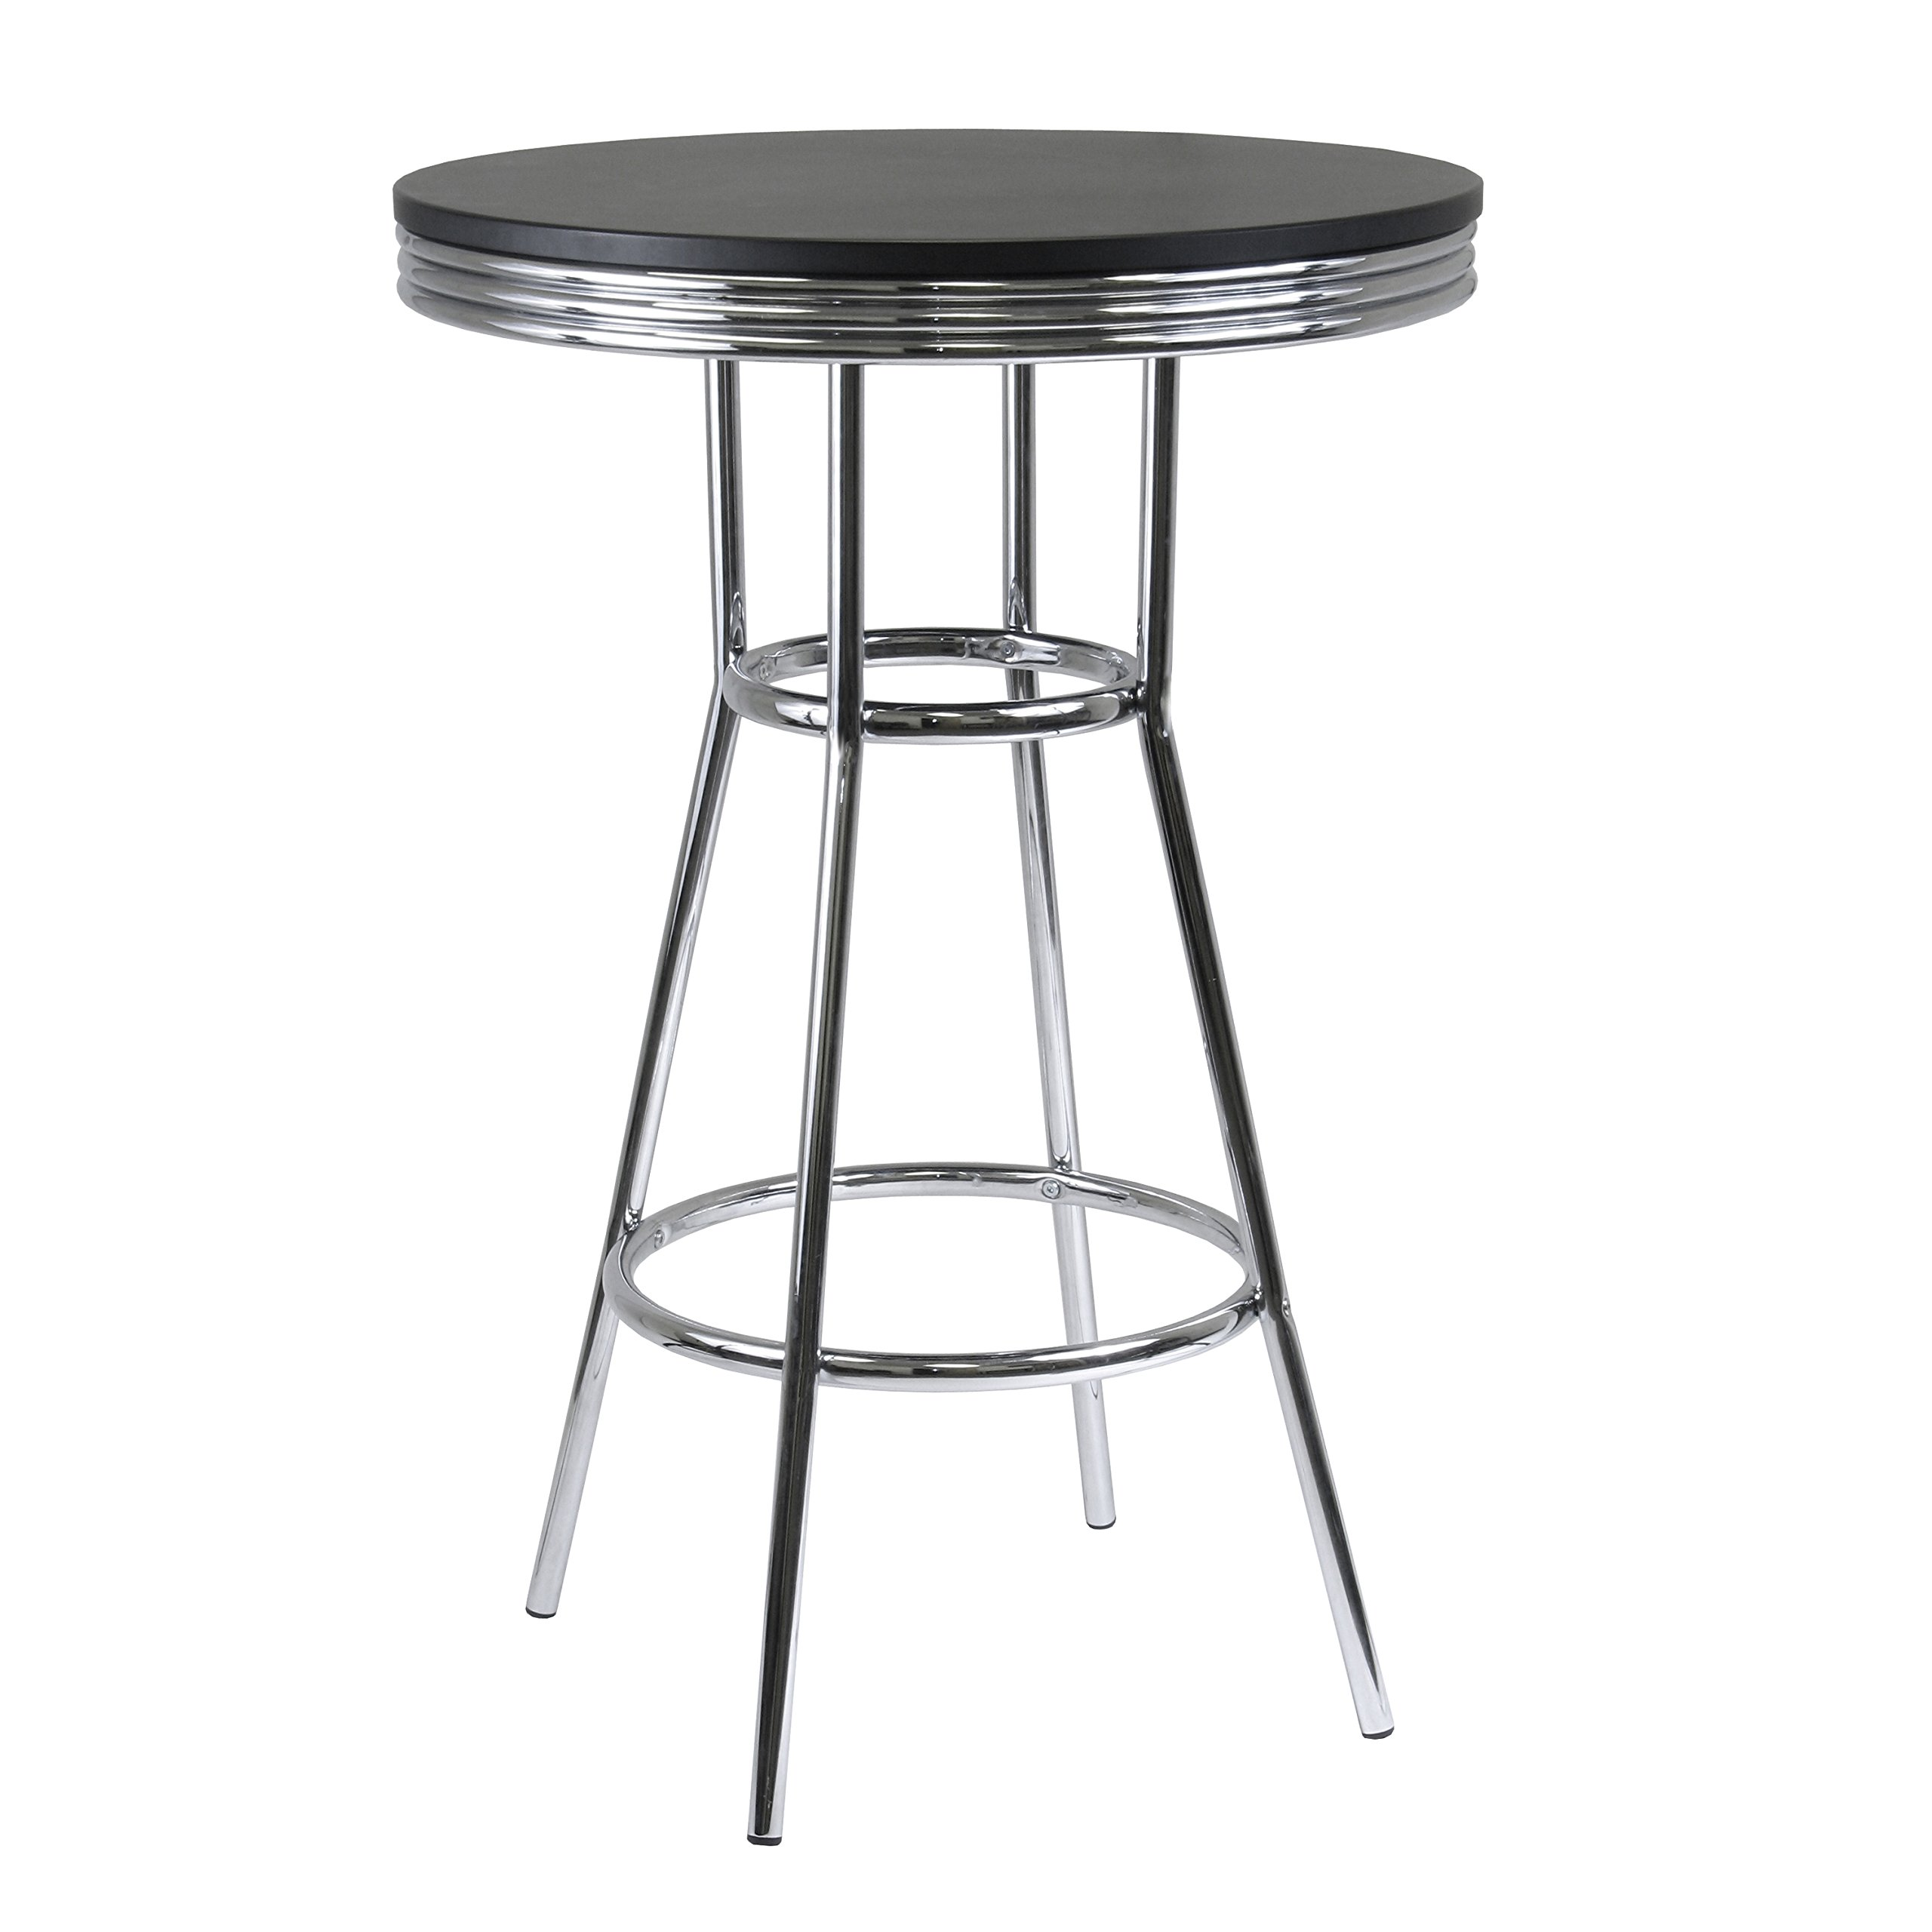 Winsome Wood Summit Pub Table with Metal Legs, MDF Black Top